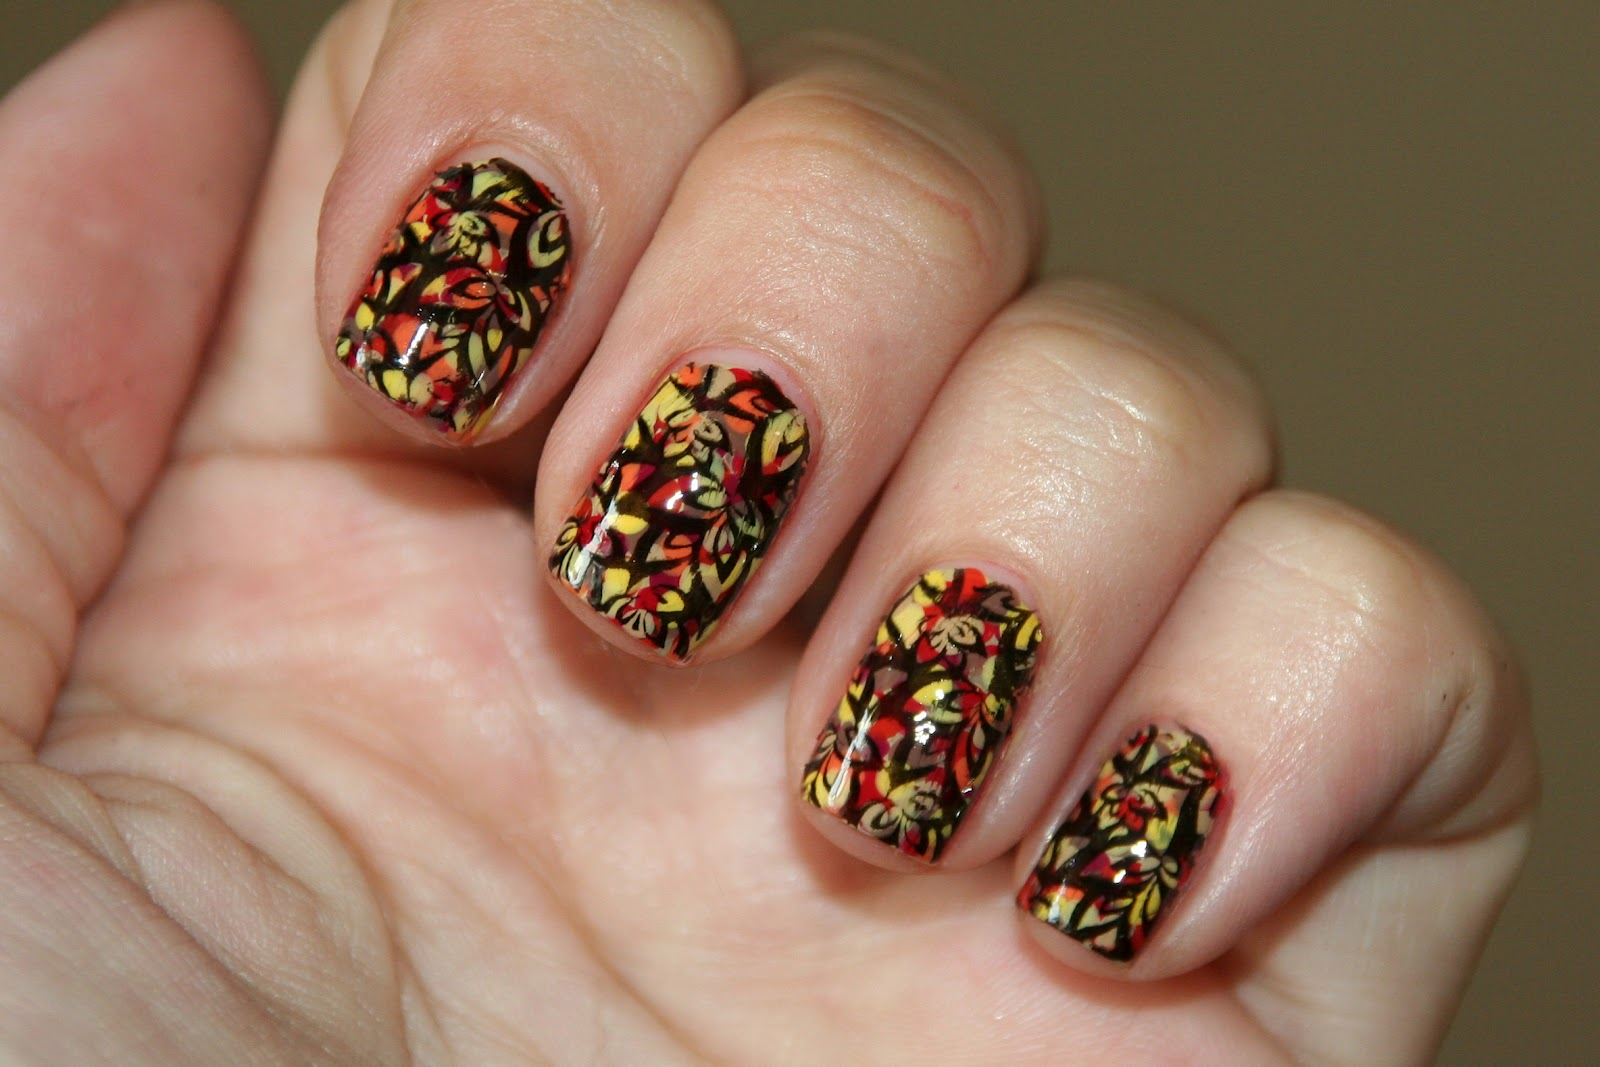 Thanksgiving Nail Design Pictures: Impressive thanksgiving nail ...